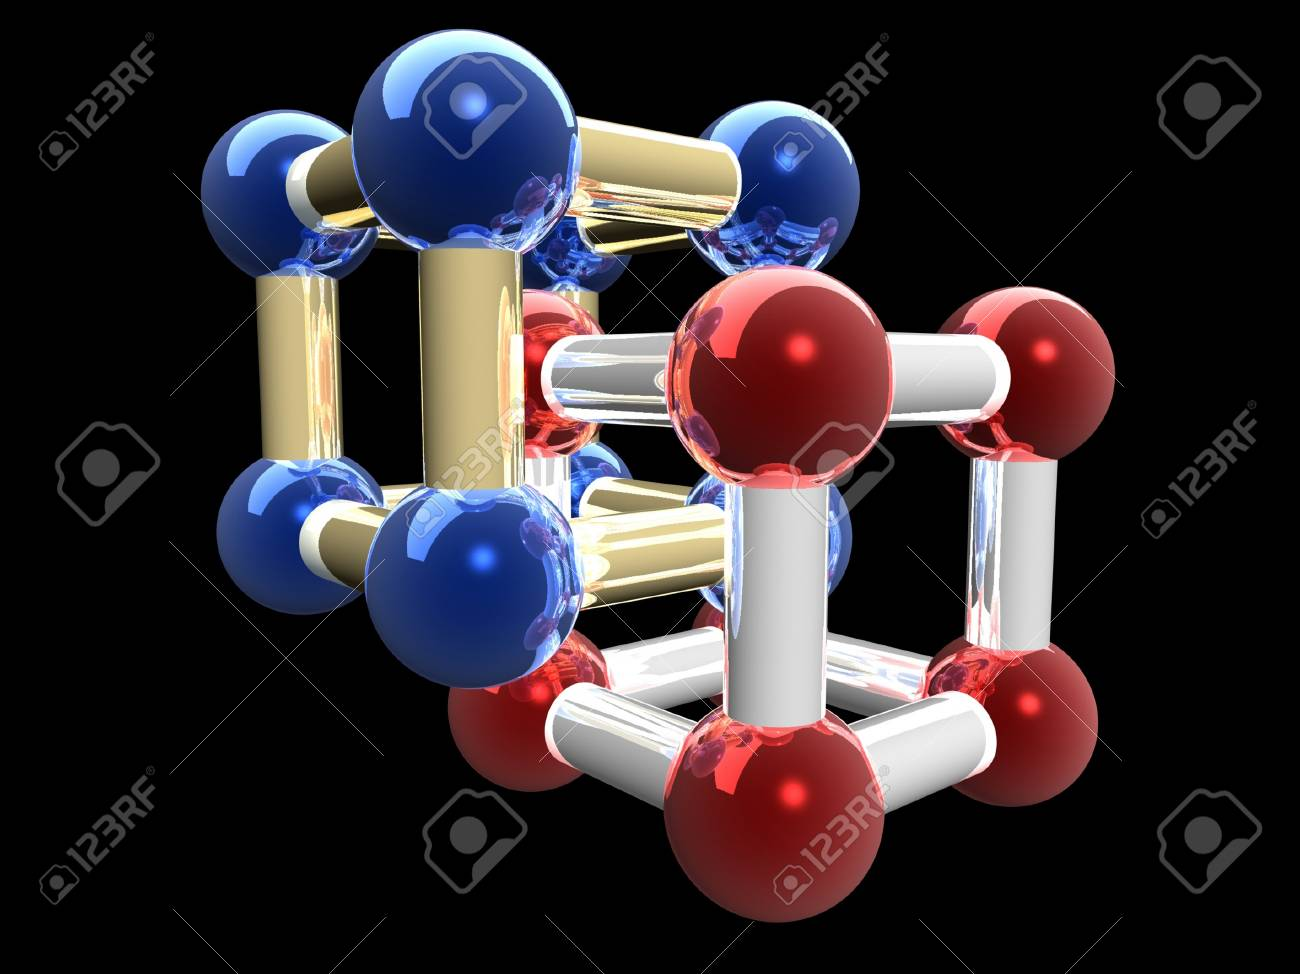 �rystalline lattice of molecule, 3D render. Stock Photo - 20568021